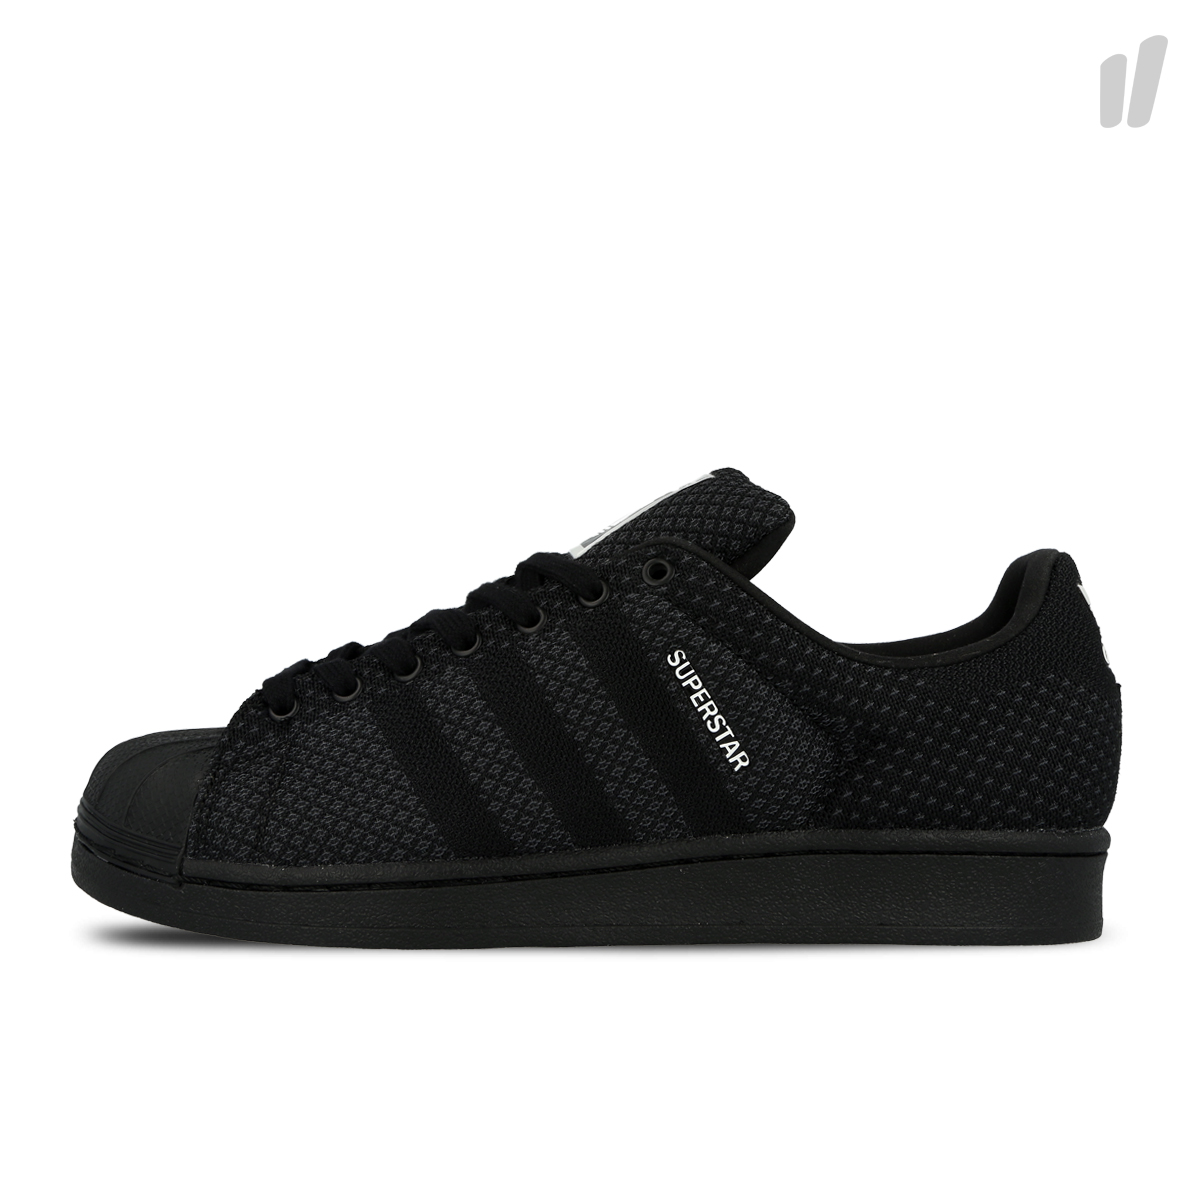 Adidas Superstar Weave Pack ( S78325 ) - OVERKILL Berlin ...